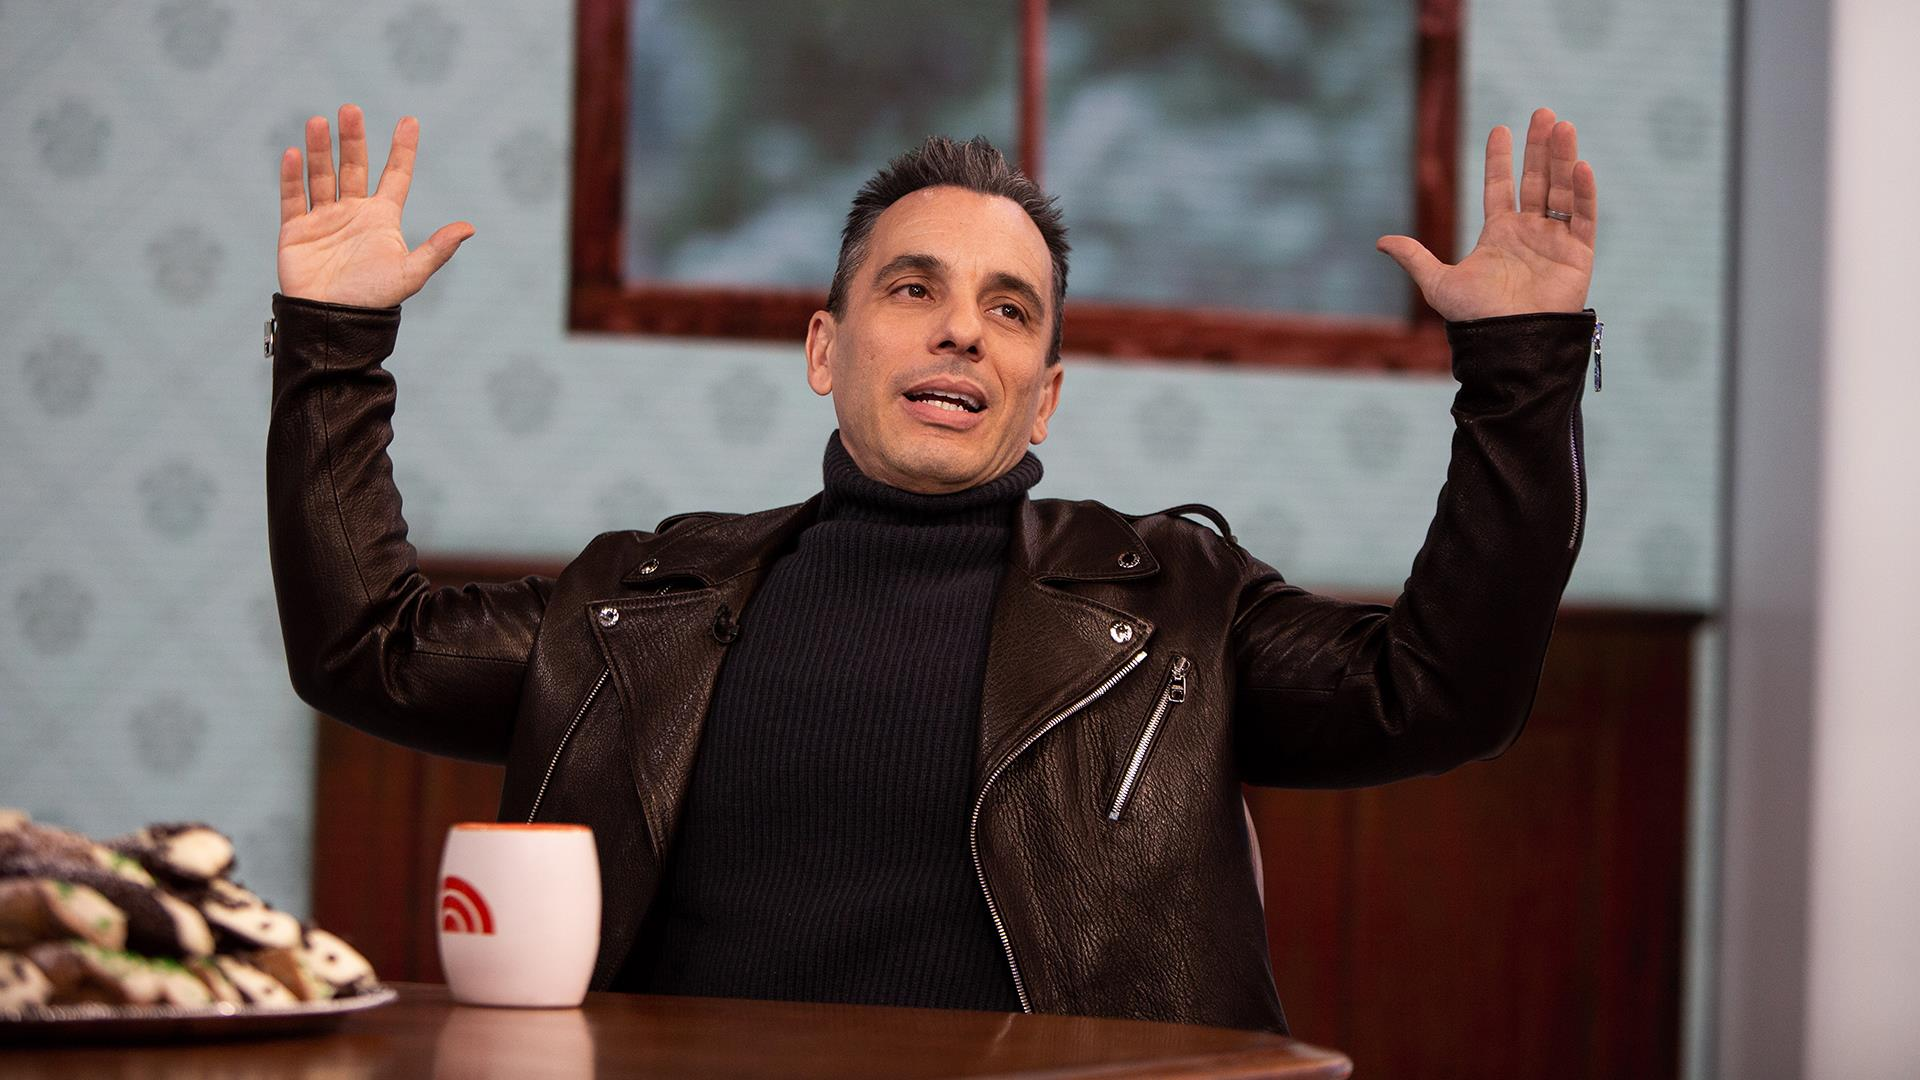 Sebastian Maniscalco talks new Netflix stand-up special, 'Stay Hungry'